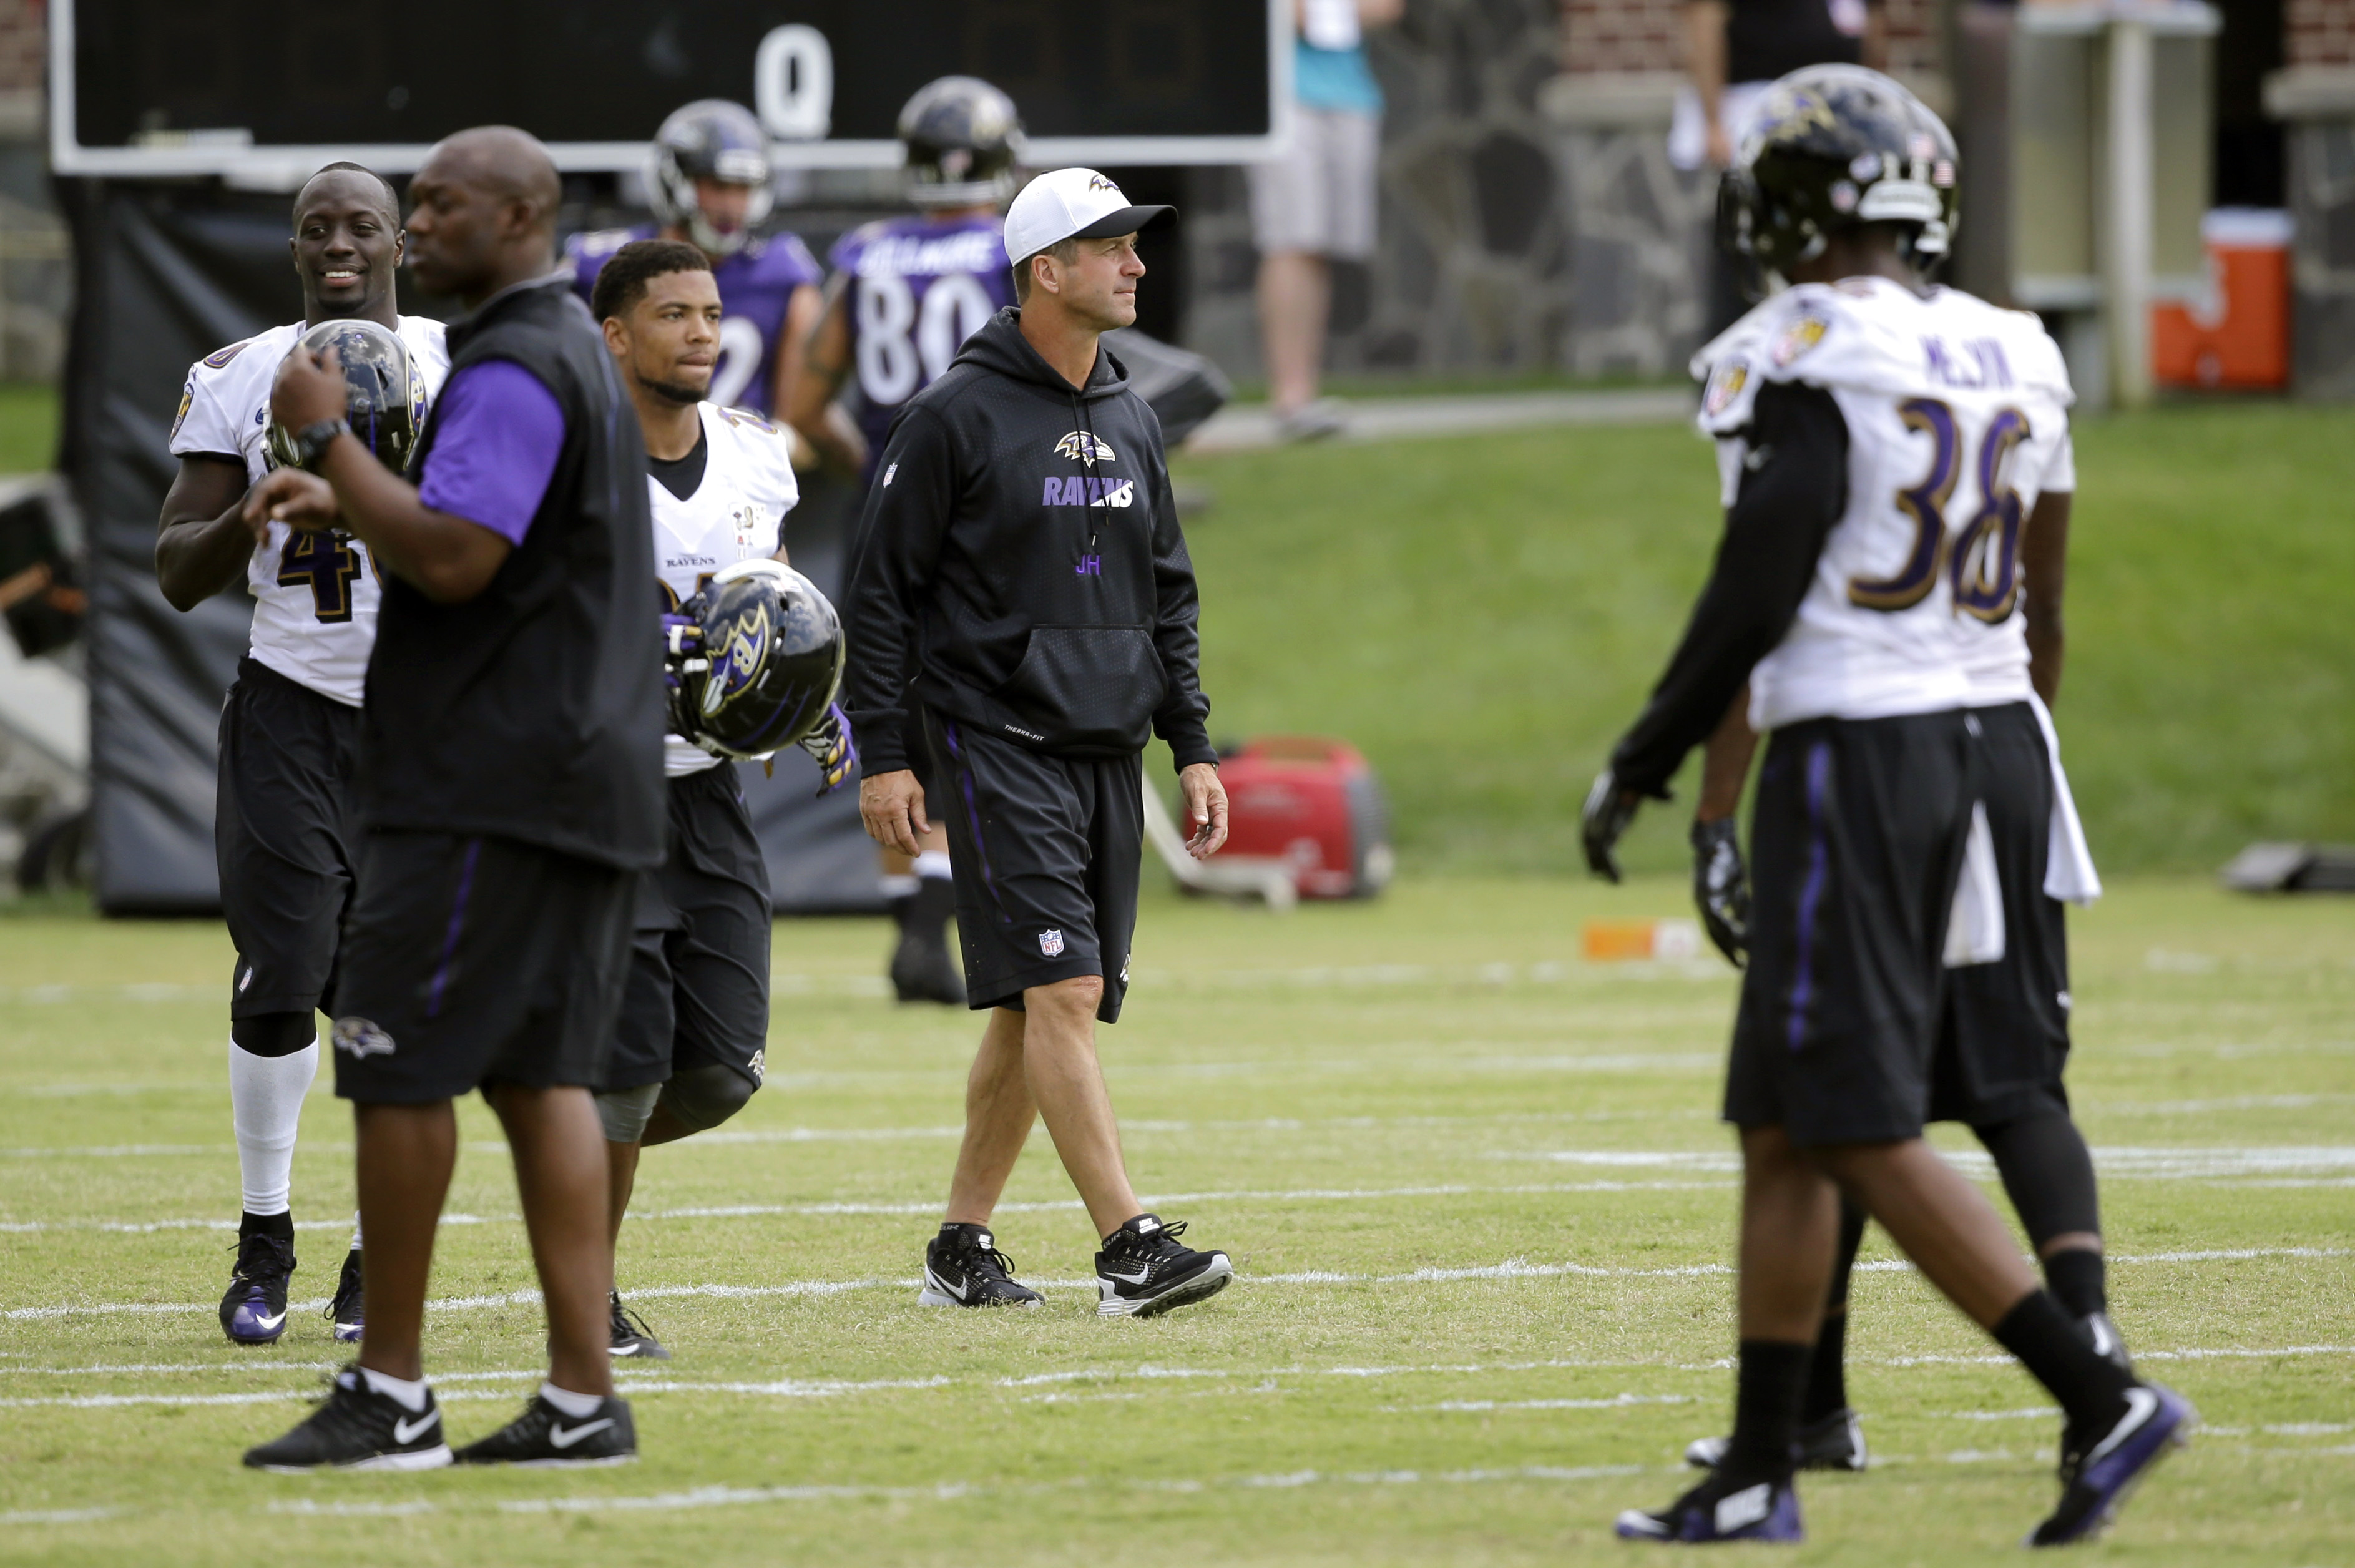 Baltimore Ravens head coach John Harbaugh, center, walks on the field during NFL football training camp, Friday, Aug. 7, 2015, in Owings Mills, Md. (AP Photo/Patrick Semansky)